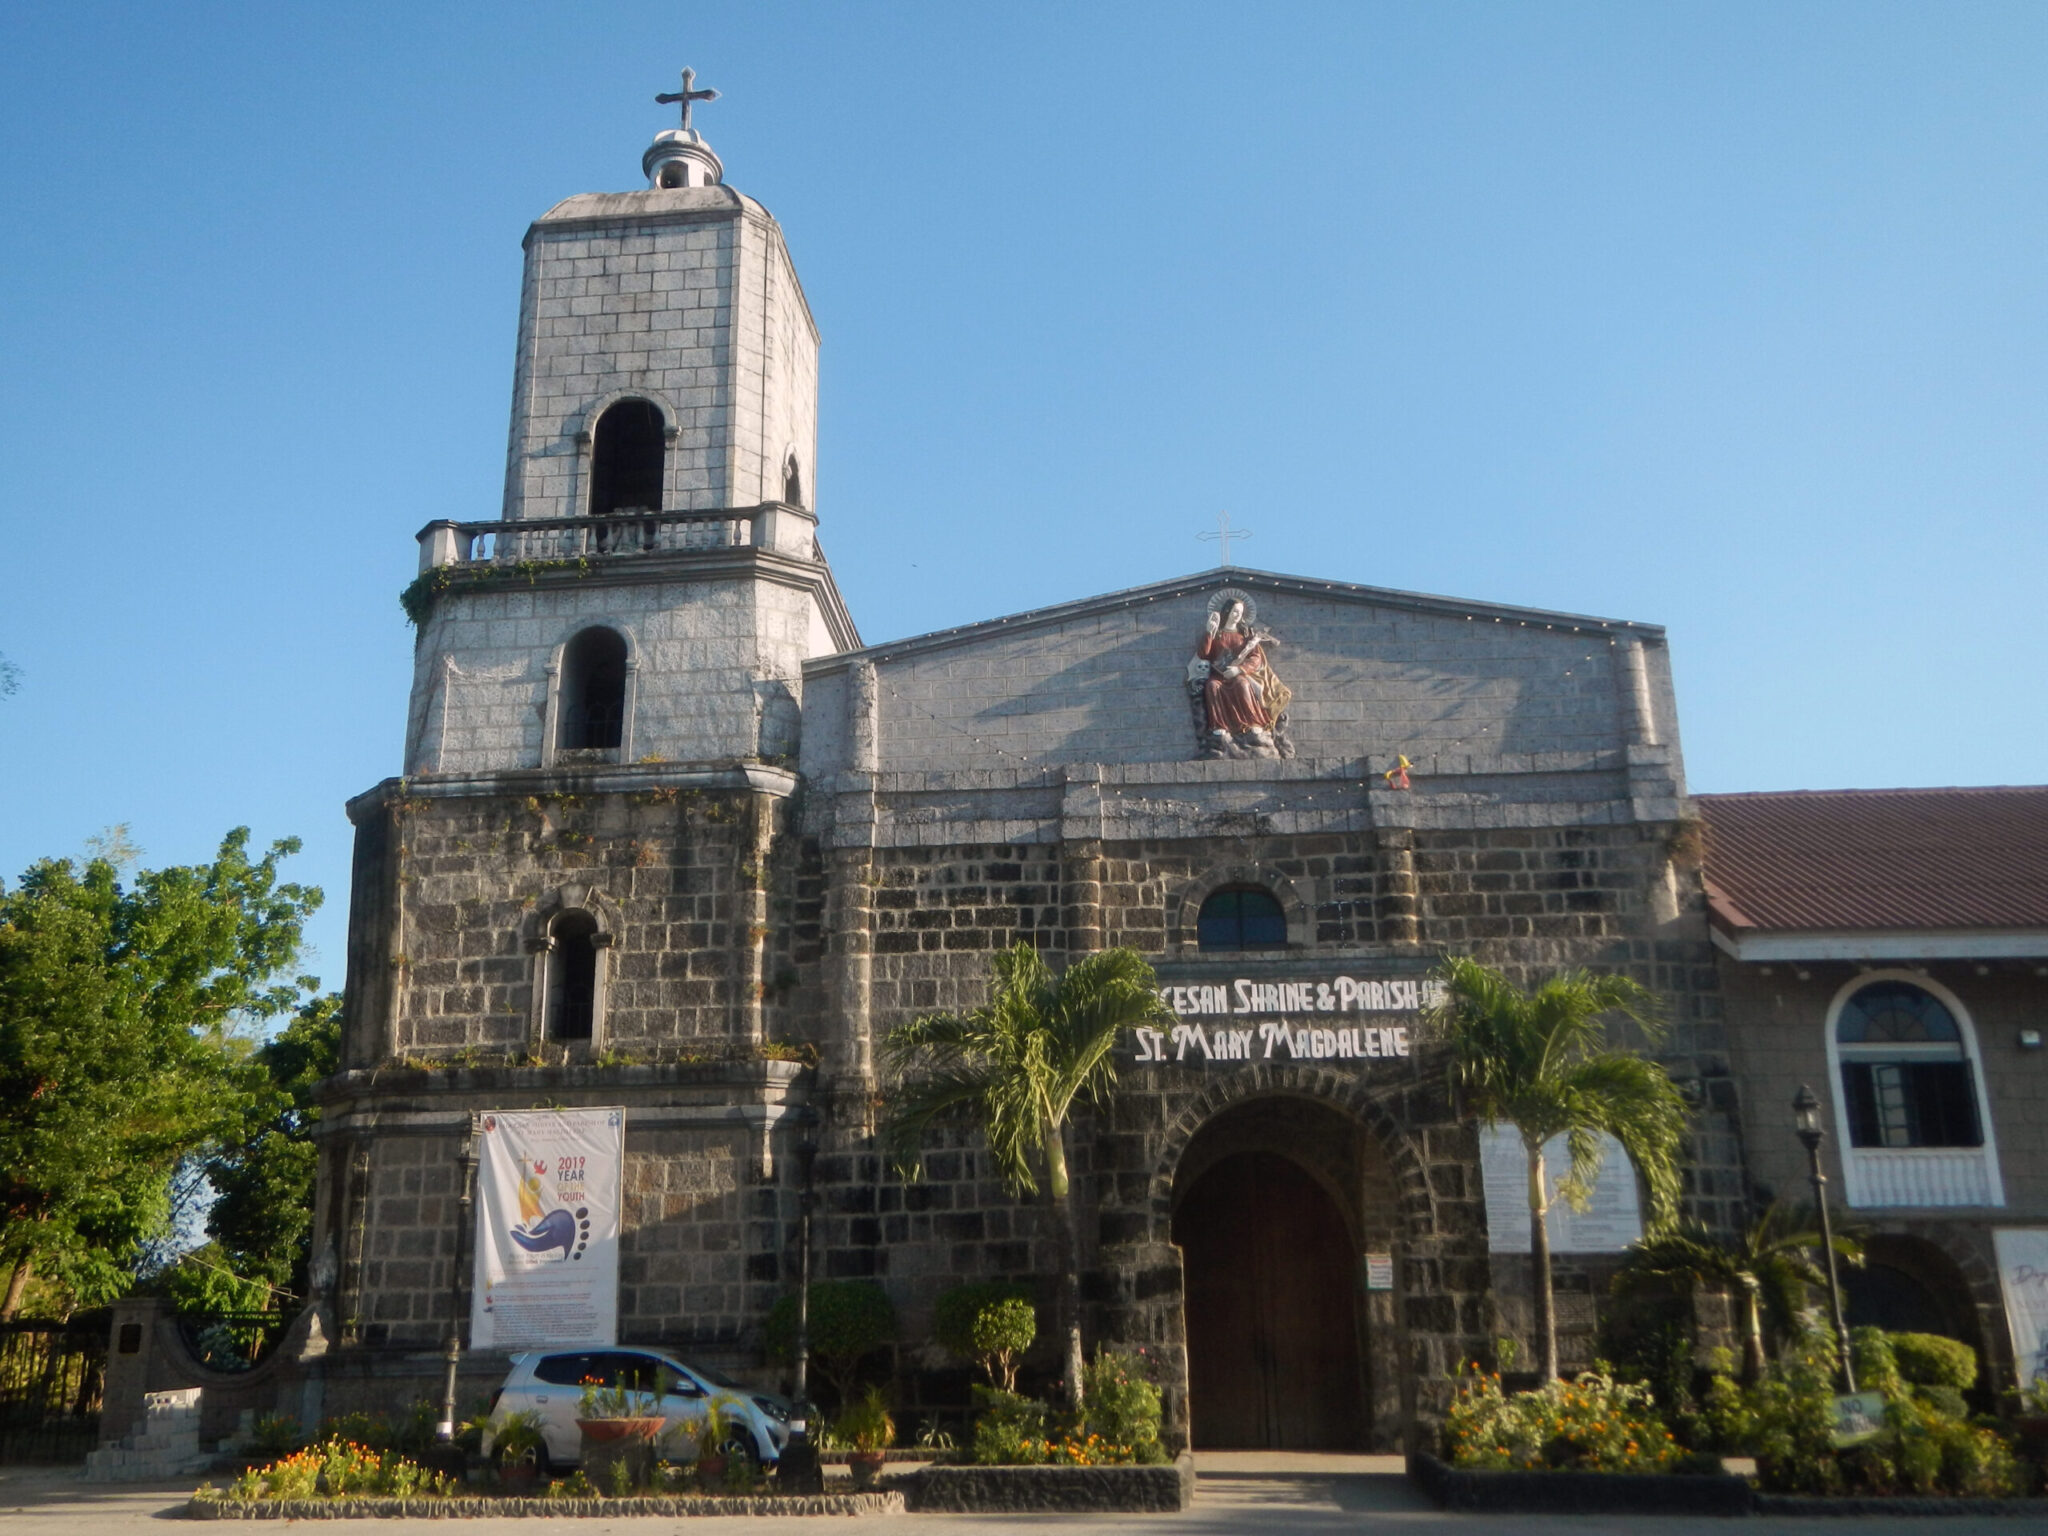 Diocesan Shrine and Parish of St. Mary Magdalene